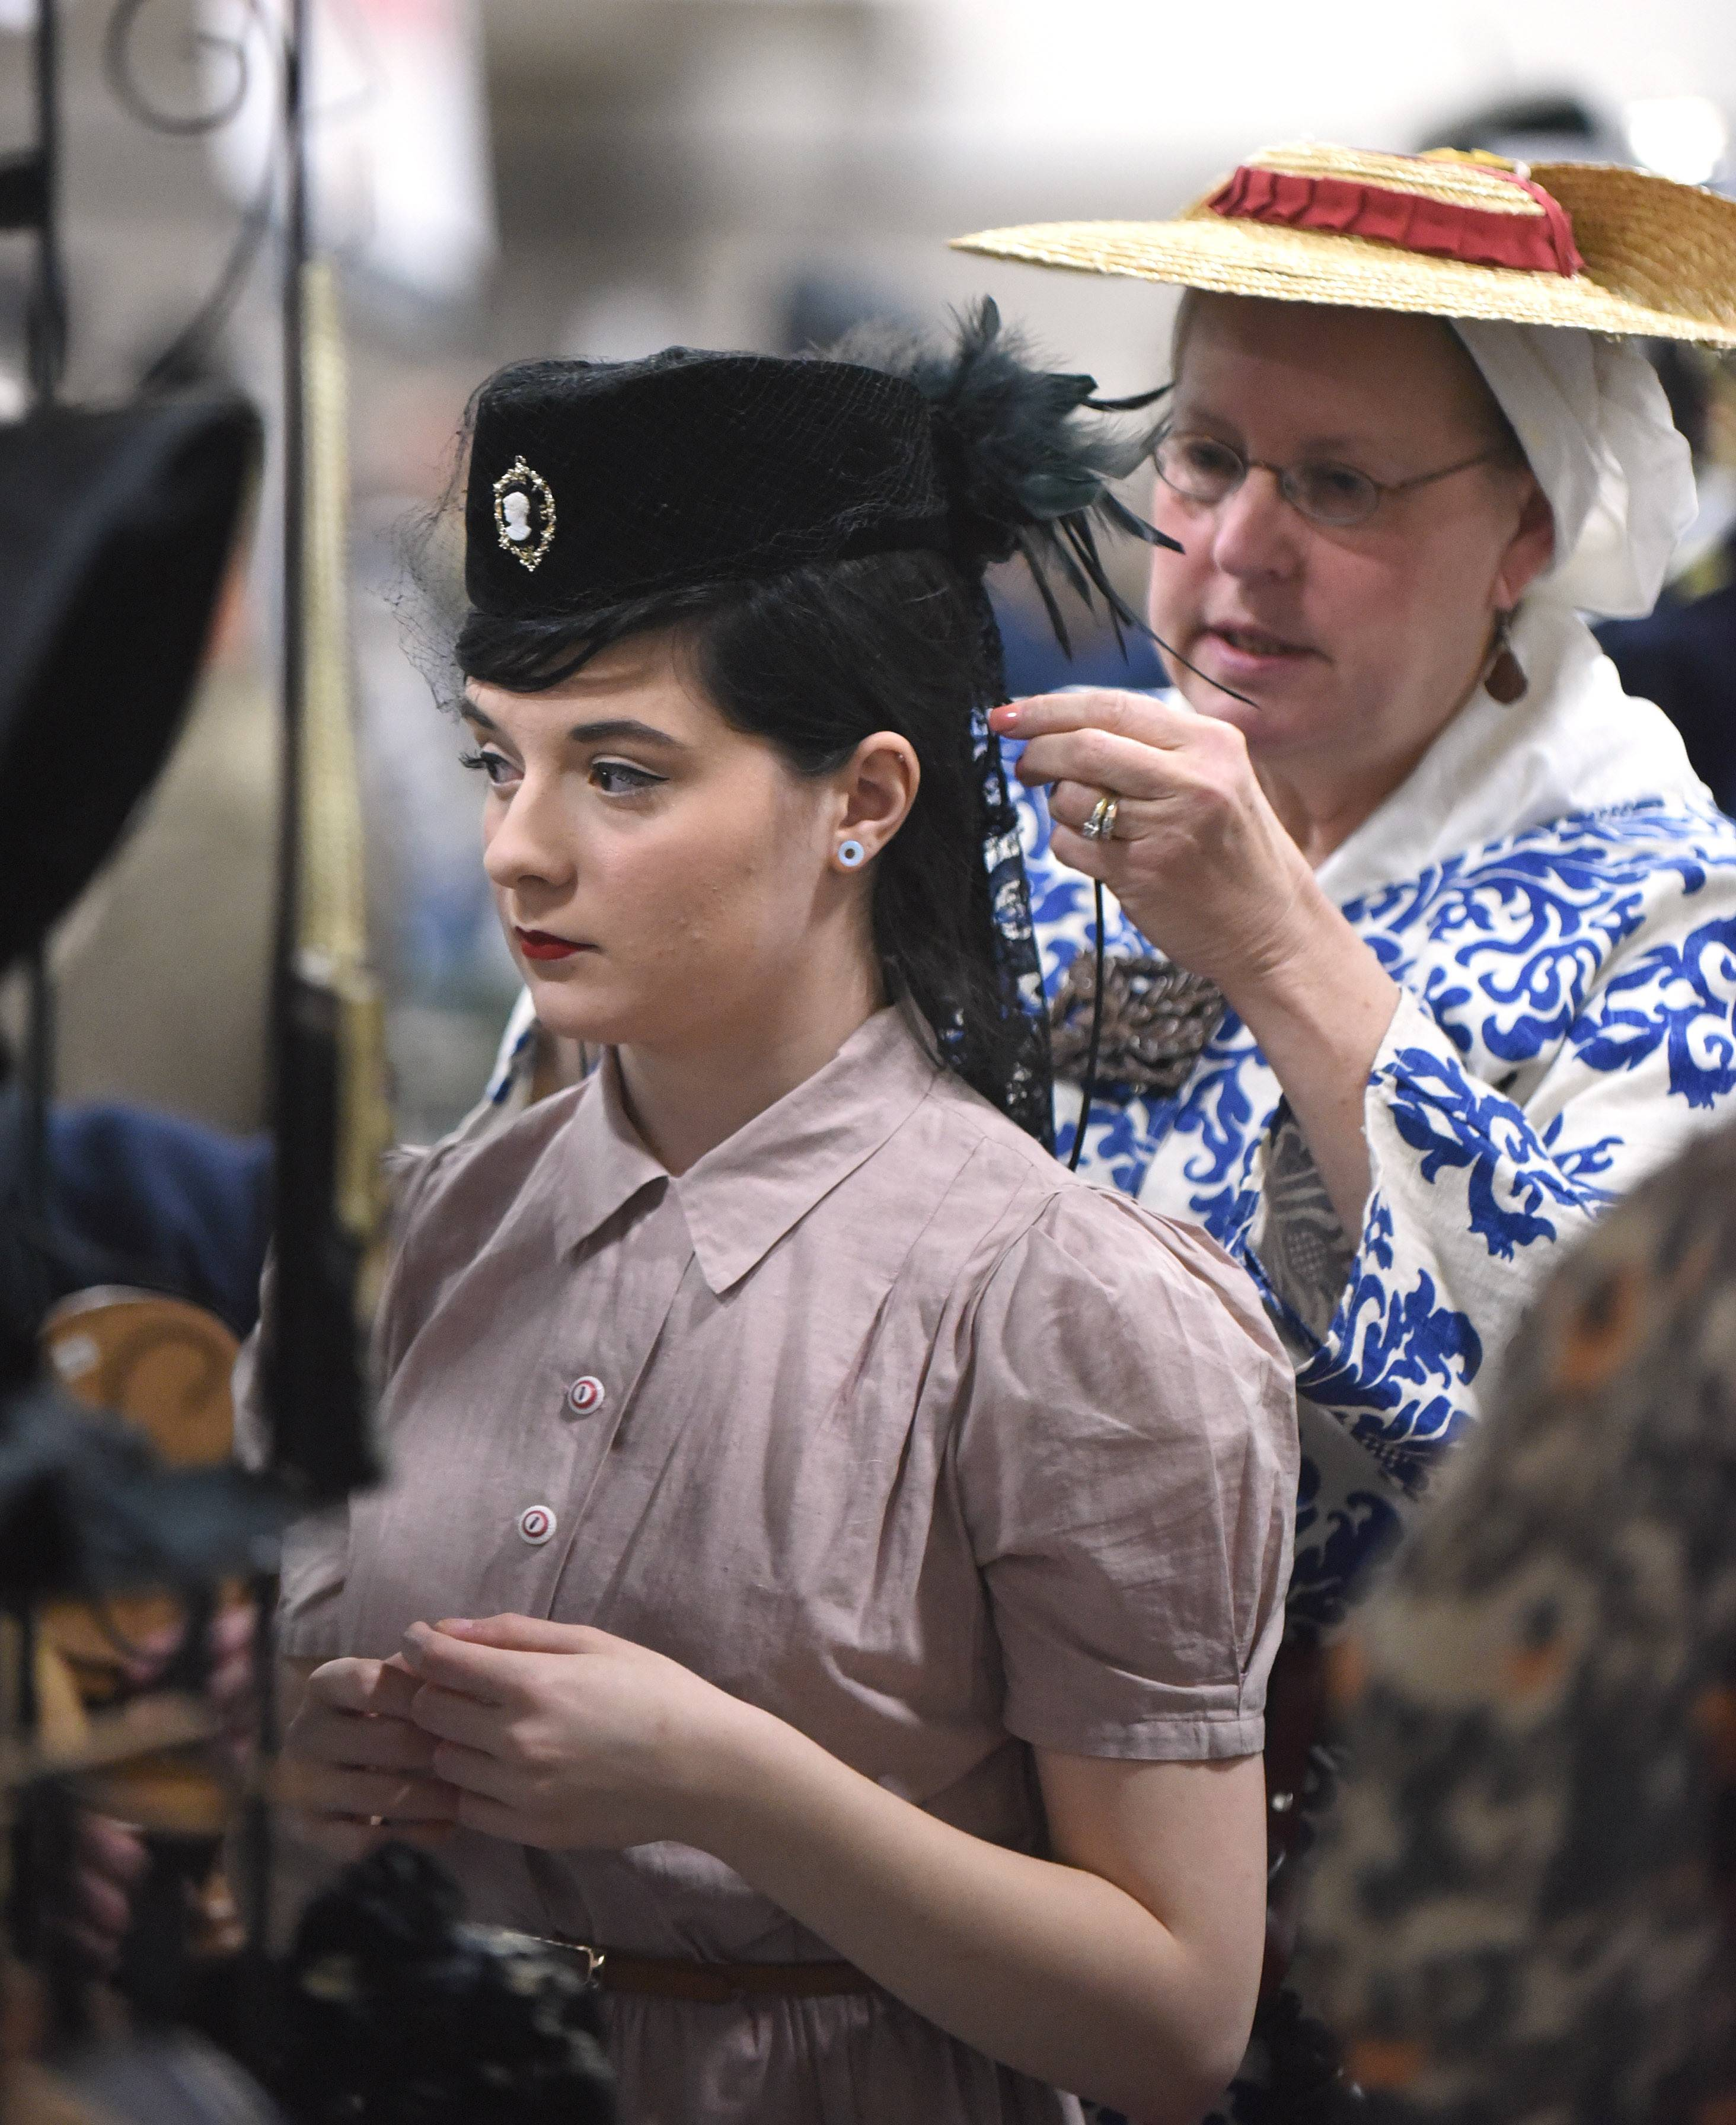 Sam Bellassai, 17, of Frankfort is fitted with a hat for her 1940s era costume by Deborah Kelly of Danville in the Ladies & Gentlemen's Emporium vendor booth Saturday during Military History Fest at Pheasant Run. Bellassai has been a re-enactor for three years and Kelly, dressed in a Revolutionary War era costume, 35 years.